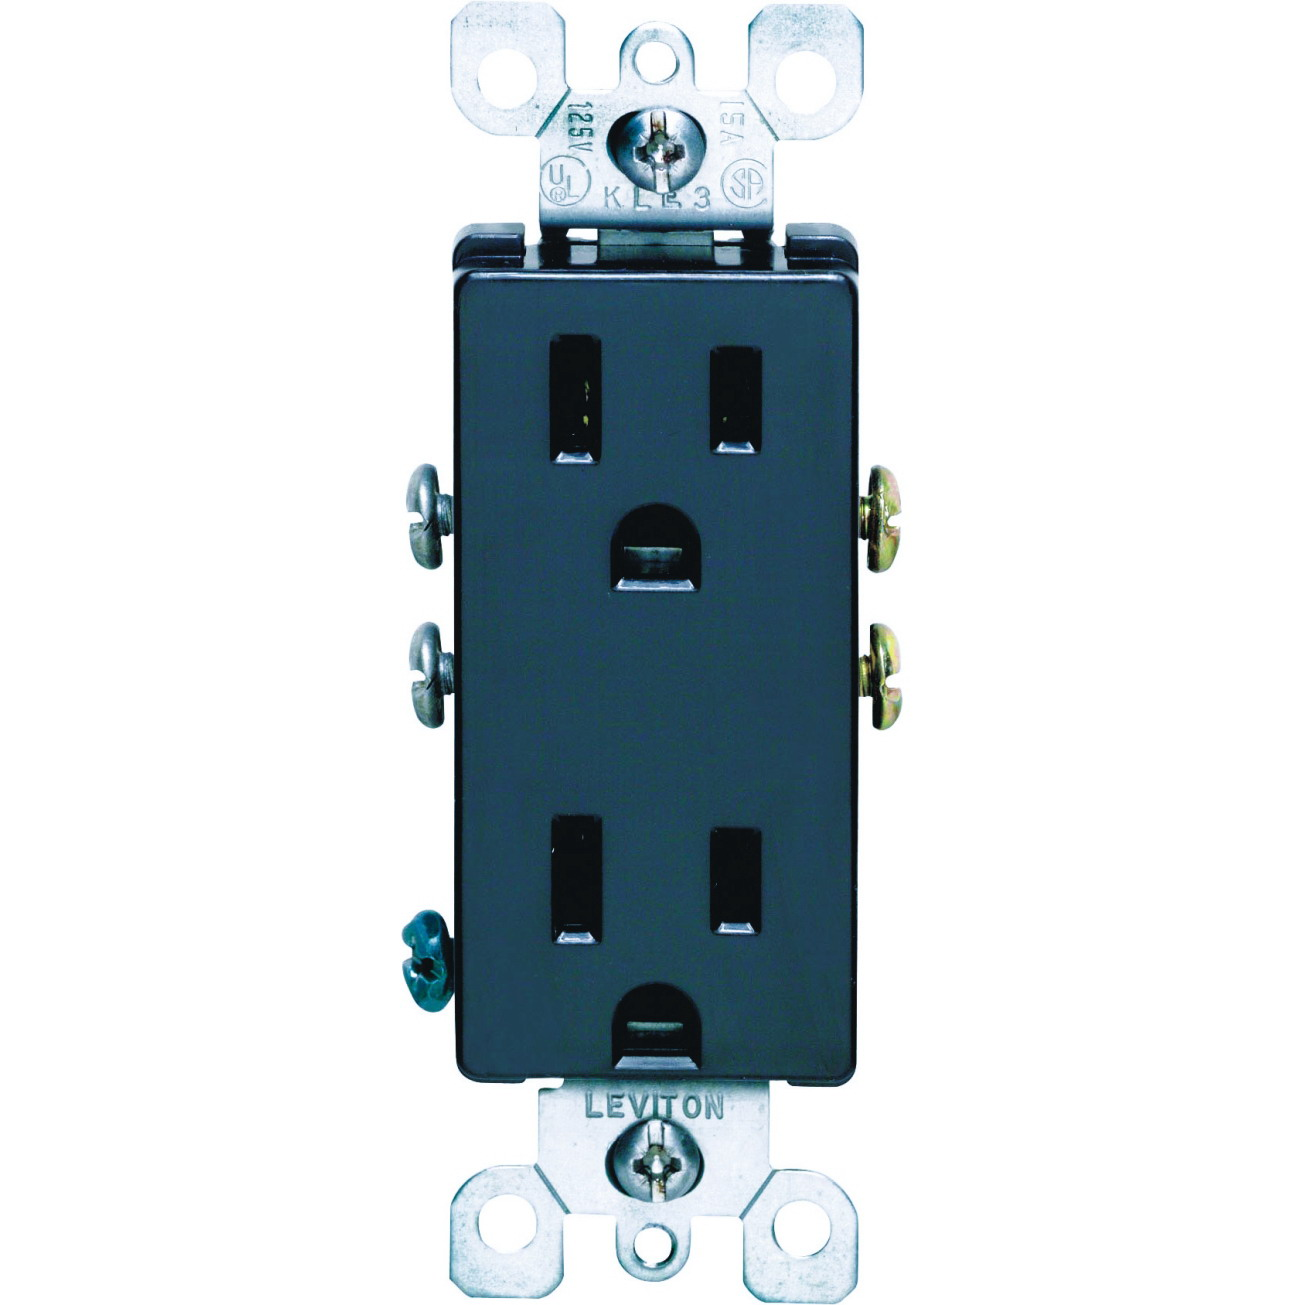 Leviton Decora Straight Blade Duplex Receptacle, 125 V, 15 A, 2 Pole, 3 Wire, Black